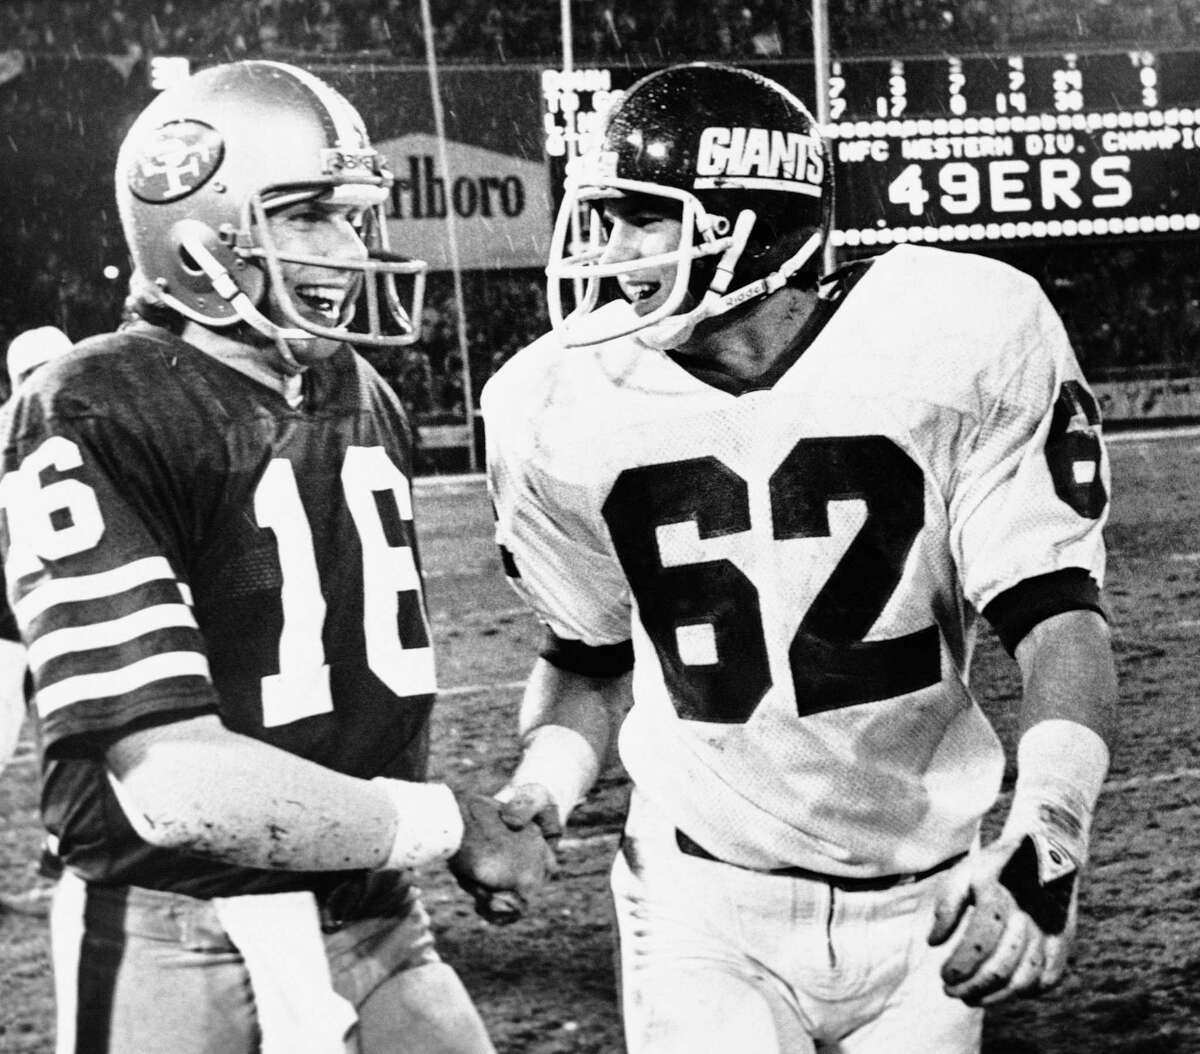 San Francisco Forty Niners quarterback Joe Montana (16) gets a handshake from New York Giants Mike Whittington (62) after a 38-24 win over the New Yorkers in the NFC Playoffs at Candlestick Park, Sunday, Jan. 3, 1982, San Francisco, Calif. (AP Photo)